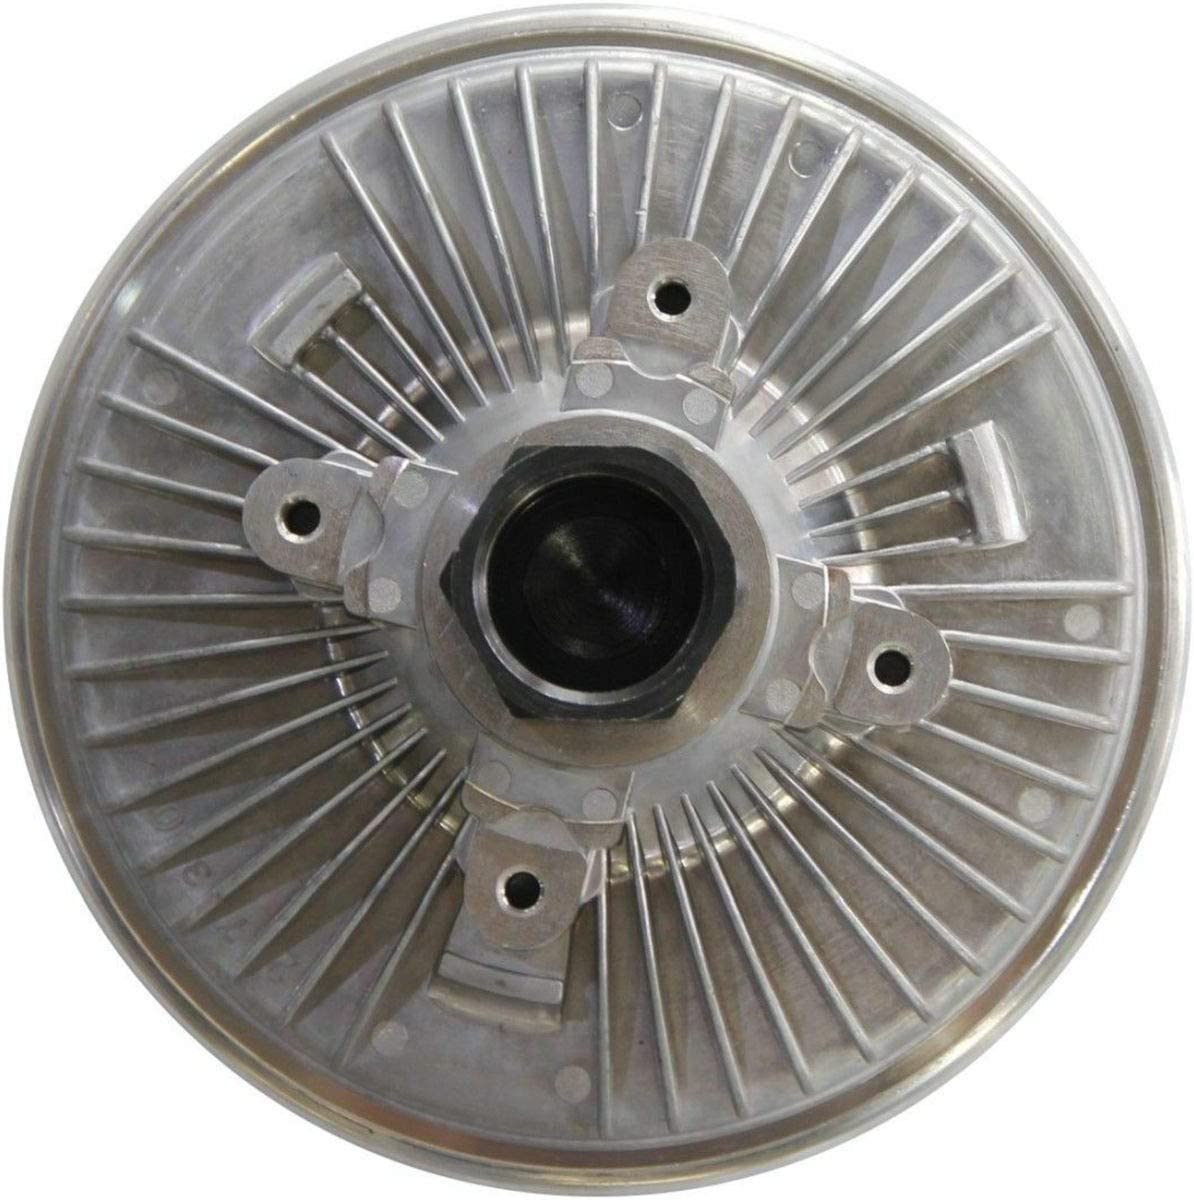 Klimoto Engine Cooling Fan Clutch fits 2001-2006 Ford Explorer Sport Trac Lincoln Aviator Mercury Mountaineer 4.0L L6 4.6L V8 Replaces 2776 7L2Z 8A616-A 215124 RS-FC-000-559 5592776